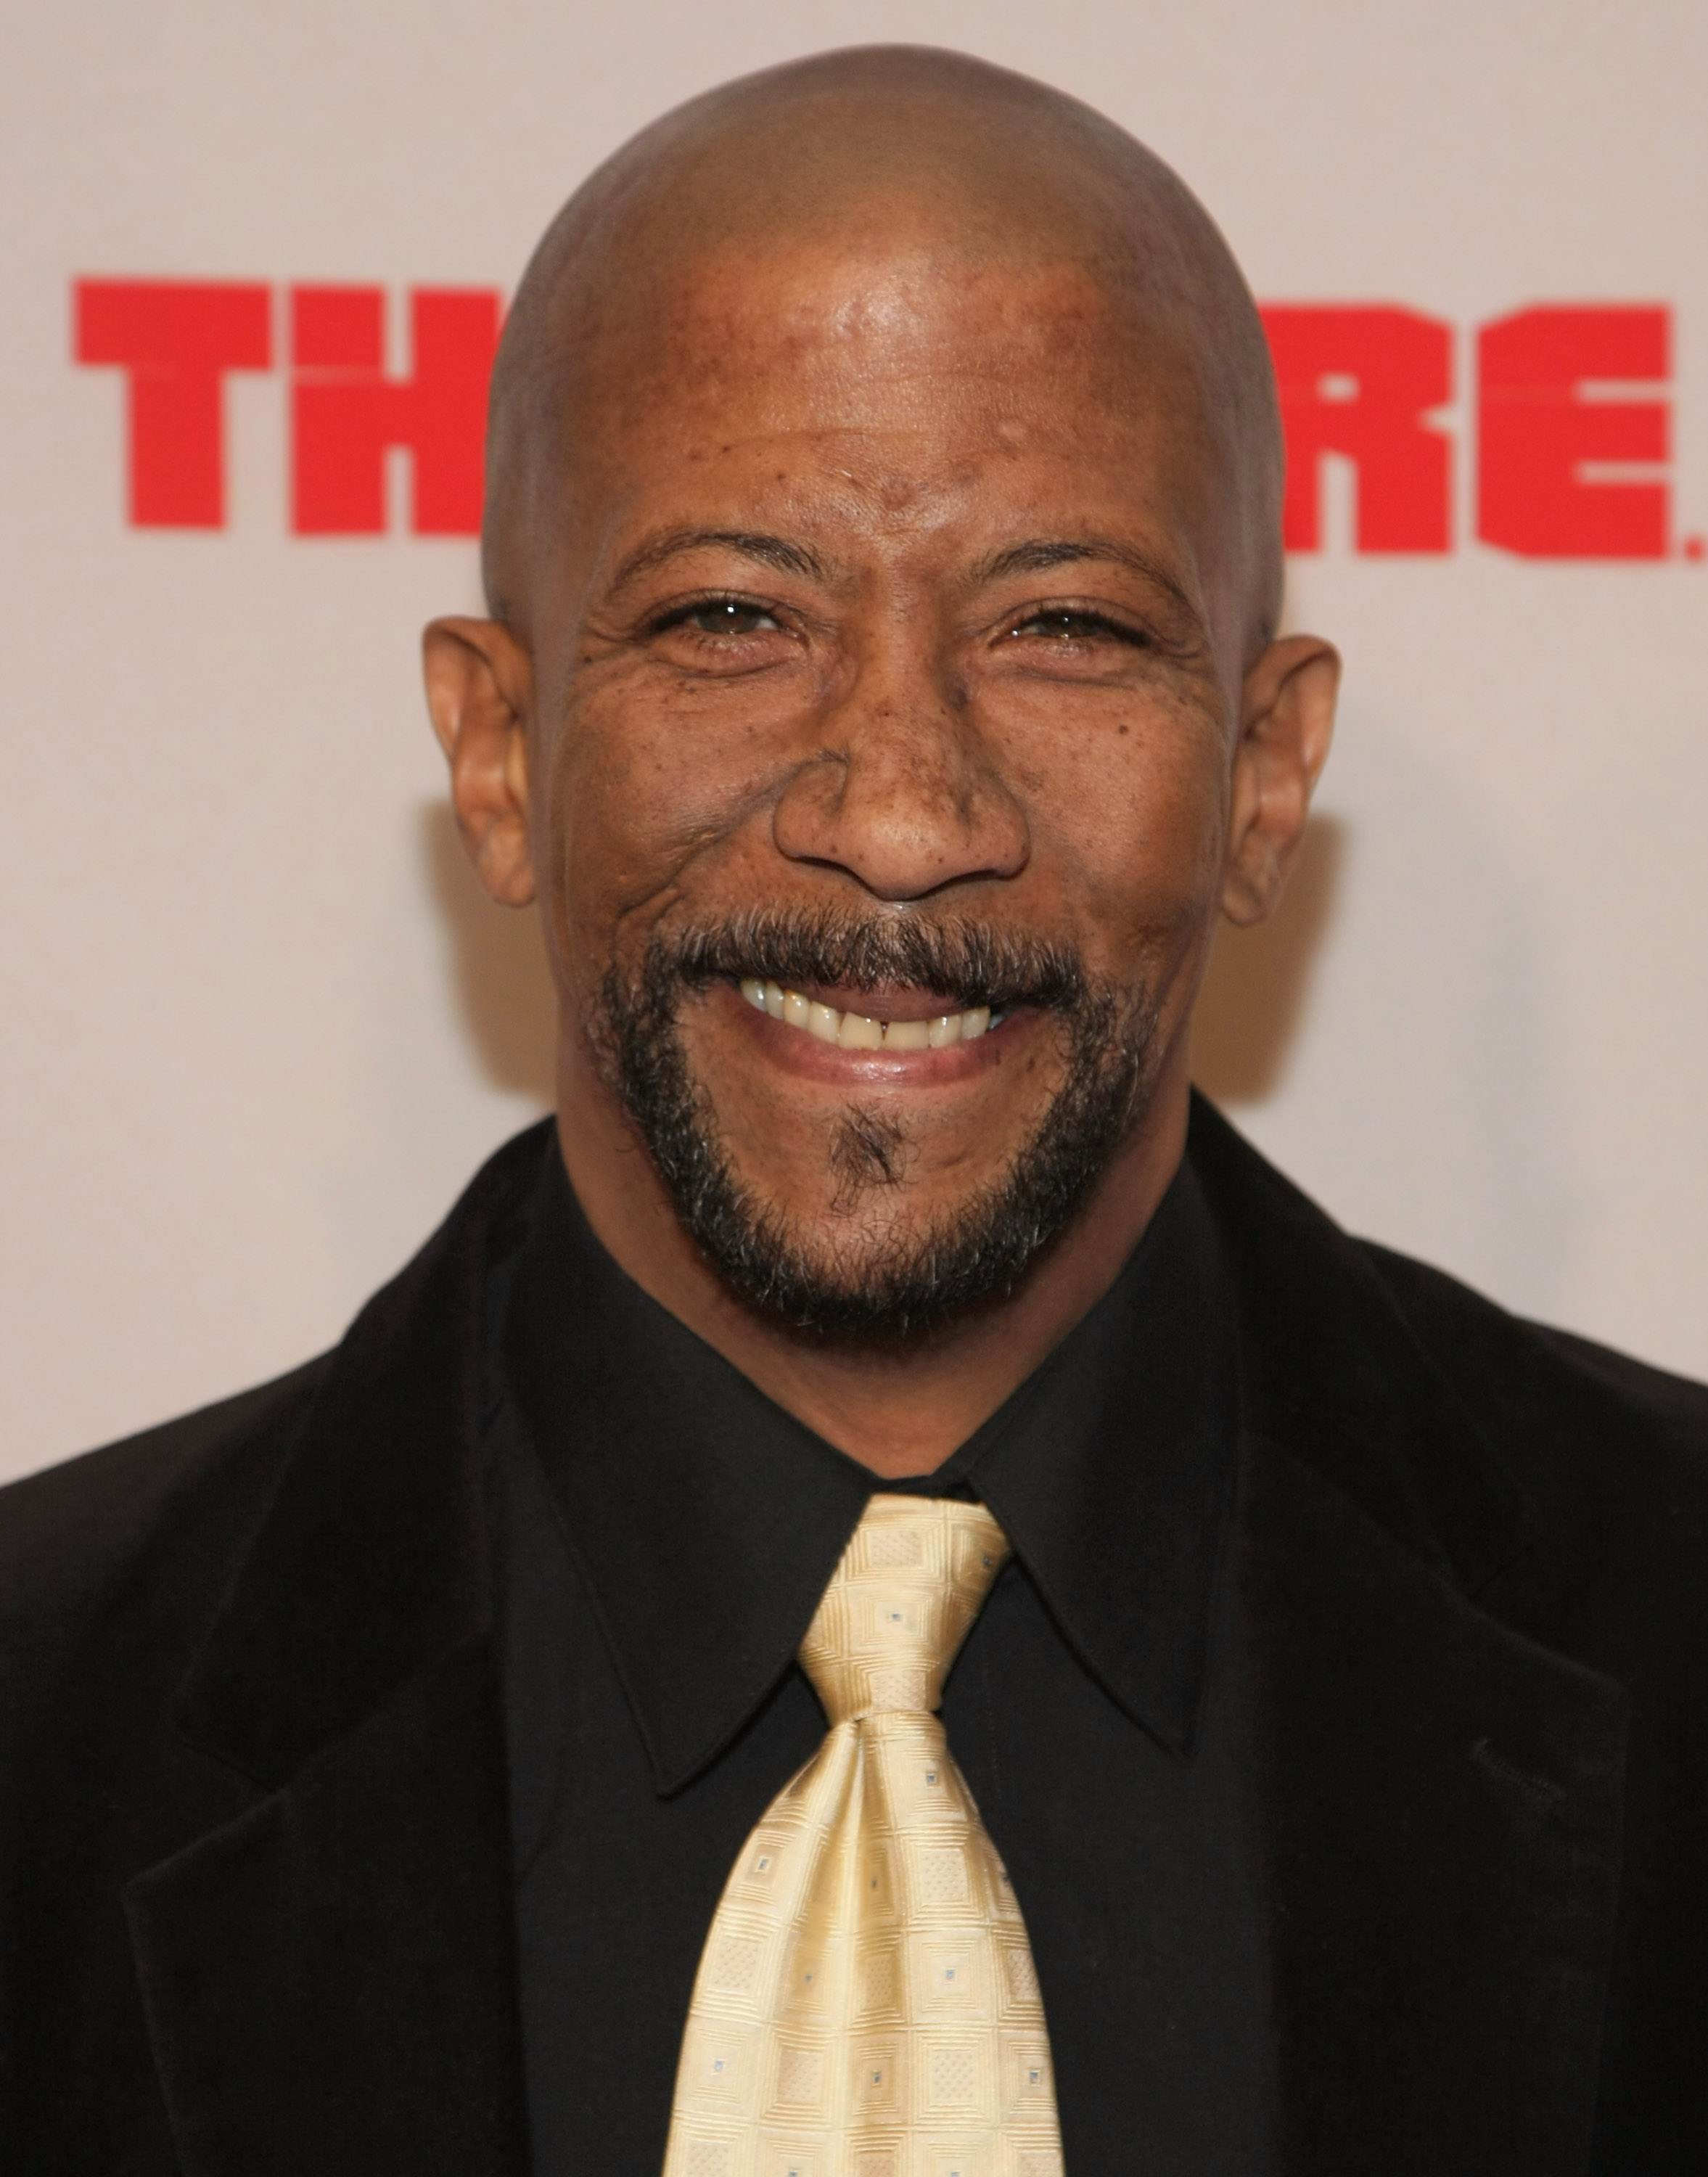 Reg E. Cathey arrives at the  The Wire  Season 5 Premiere at the Chelsea West Theater on Jan. 4, 2008 in New York City.